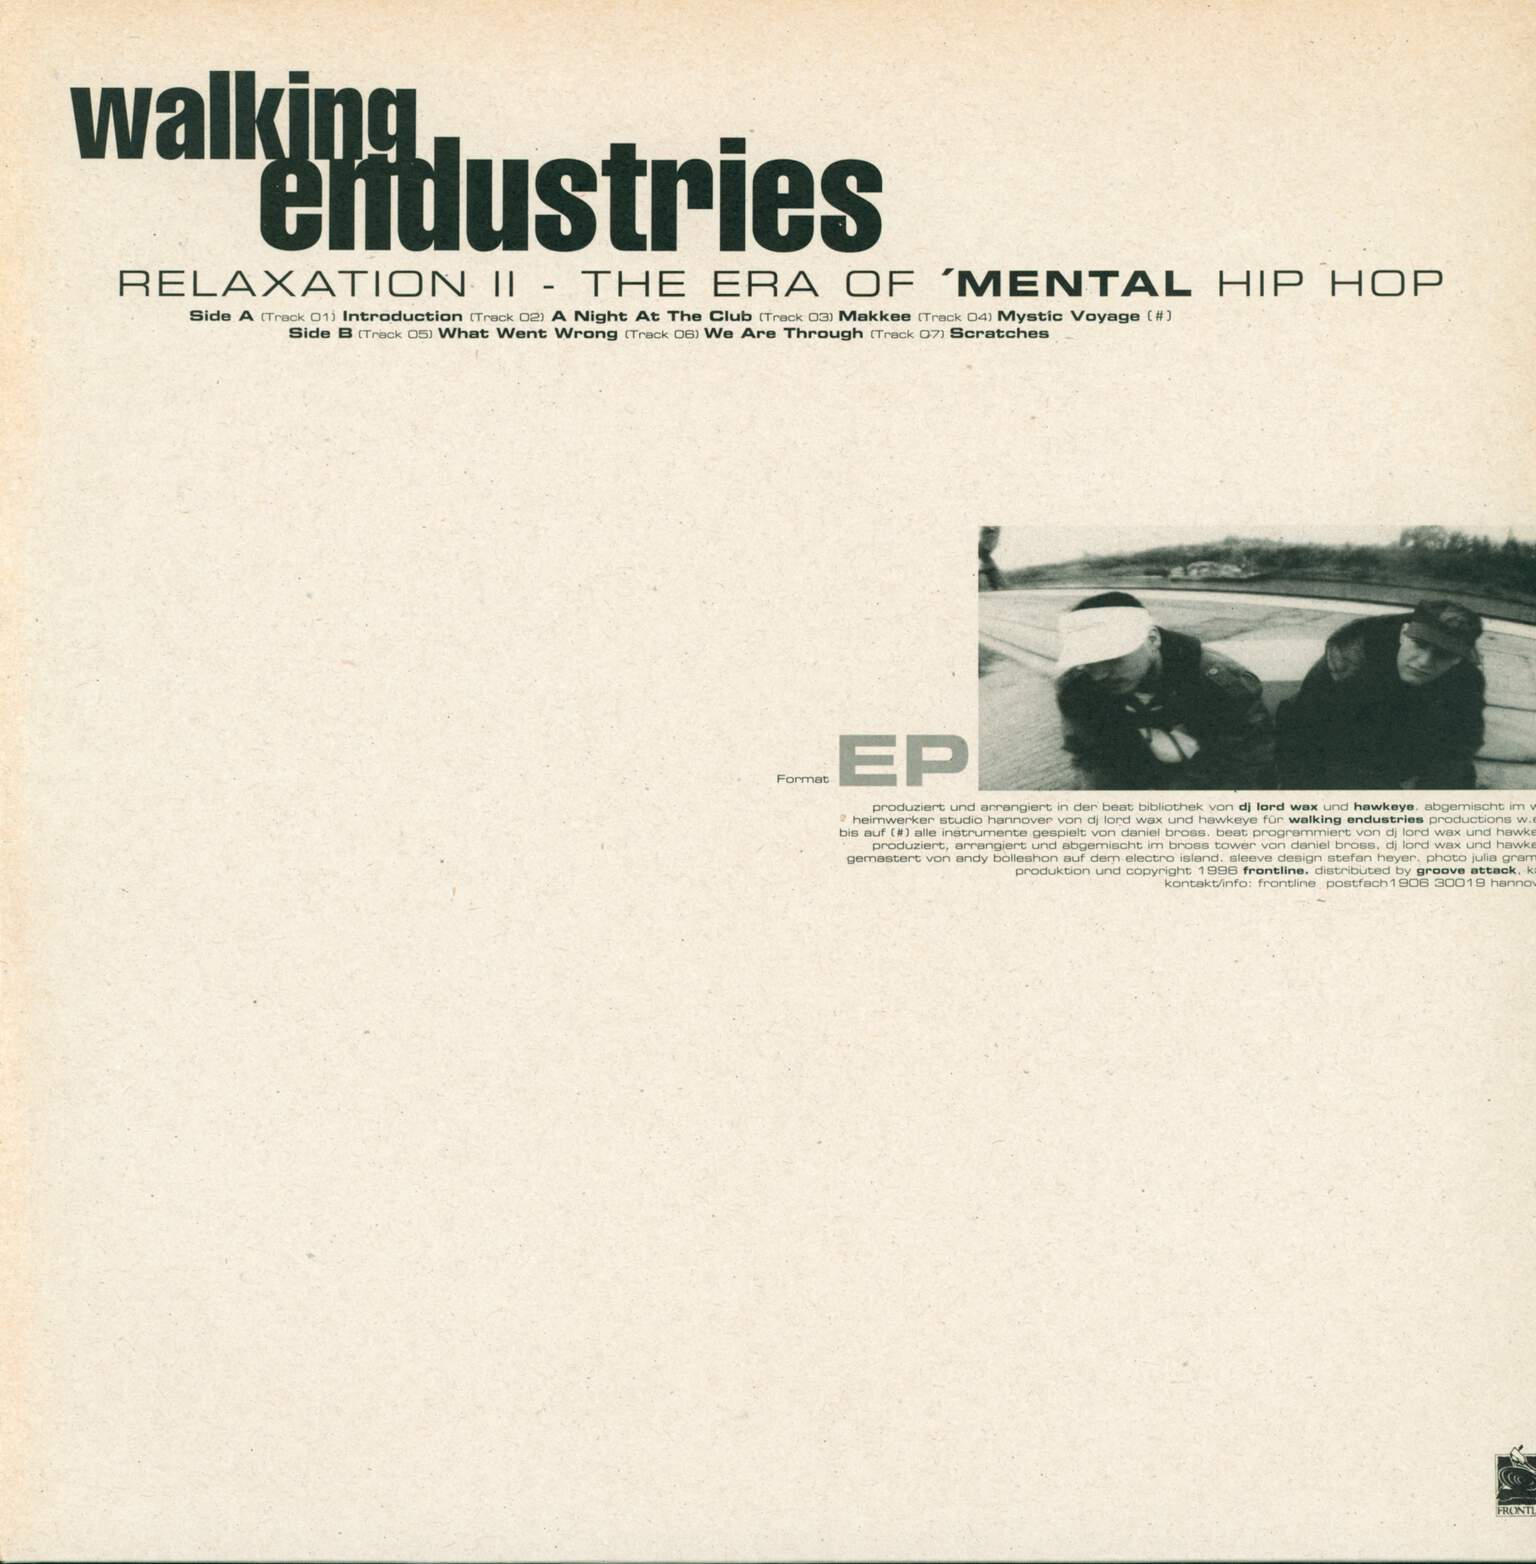 "Walking Endustries: Relaxation II - The Era Of 'Mental Hip Hop, 12"" Maxi Single (Vinyl)"